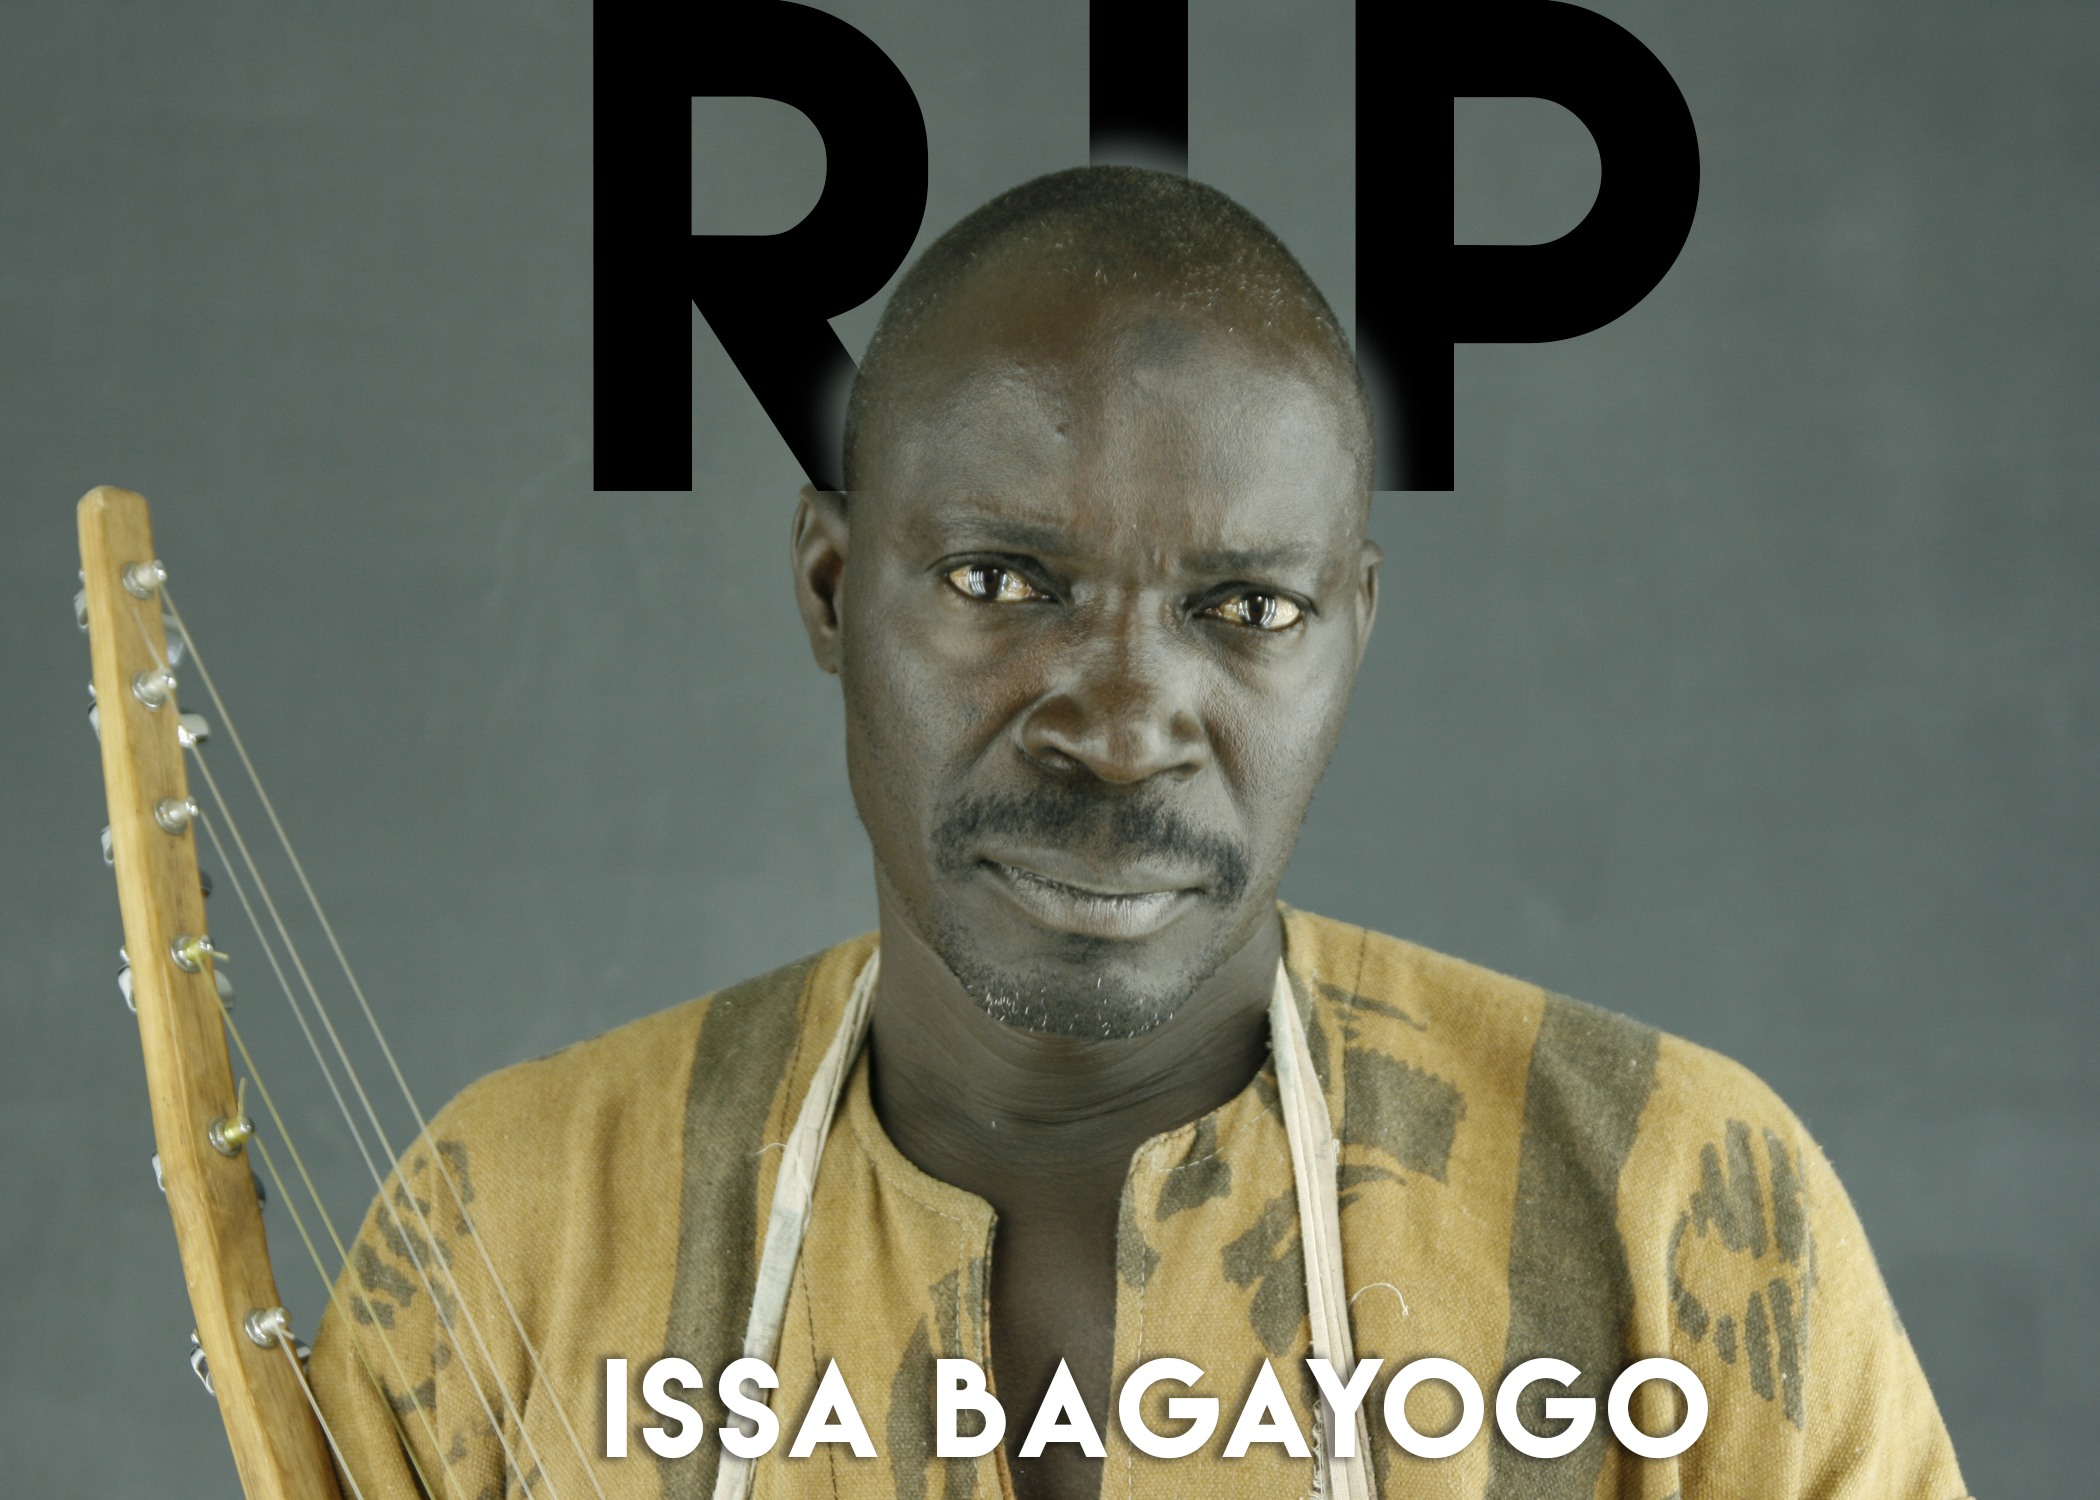 We are truly saddened to announce that Issa Bagayogo died today